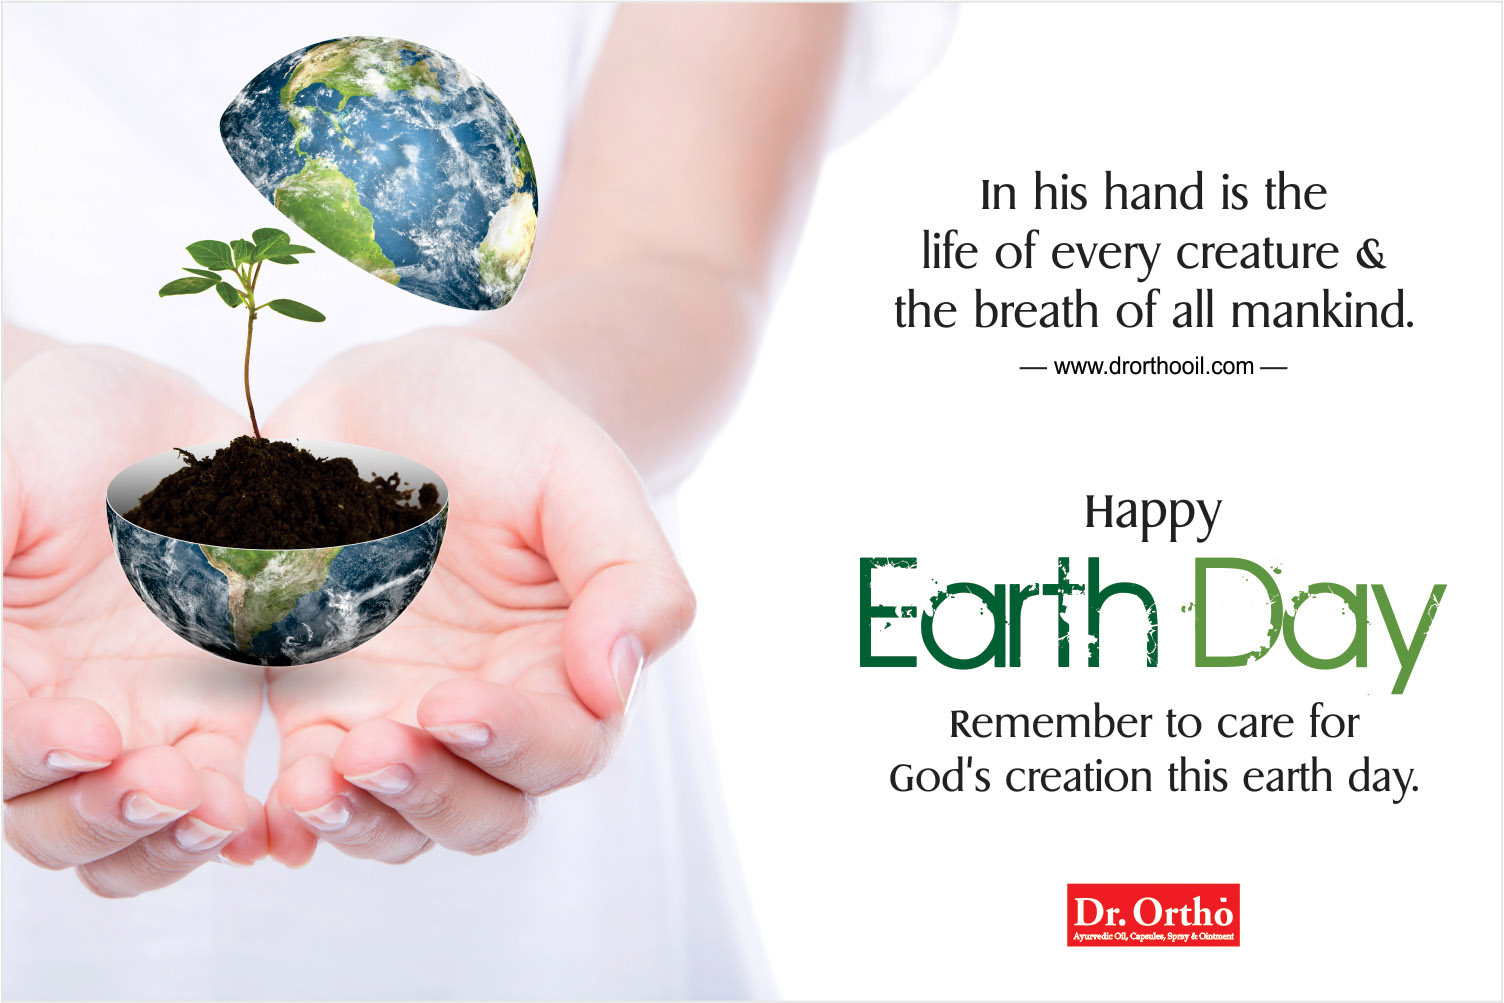 22 April 2018, Happy Earth Day, National International Day, Dr. Ortho